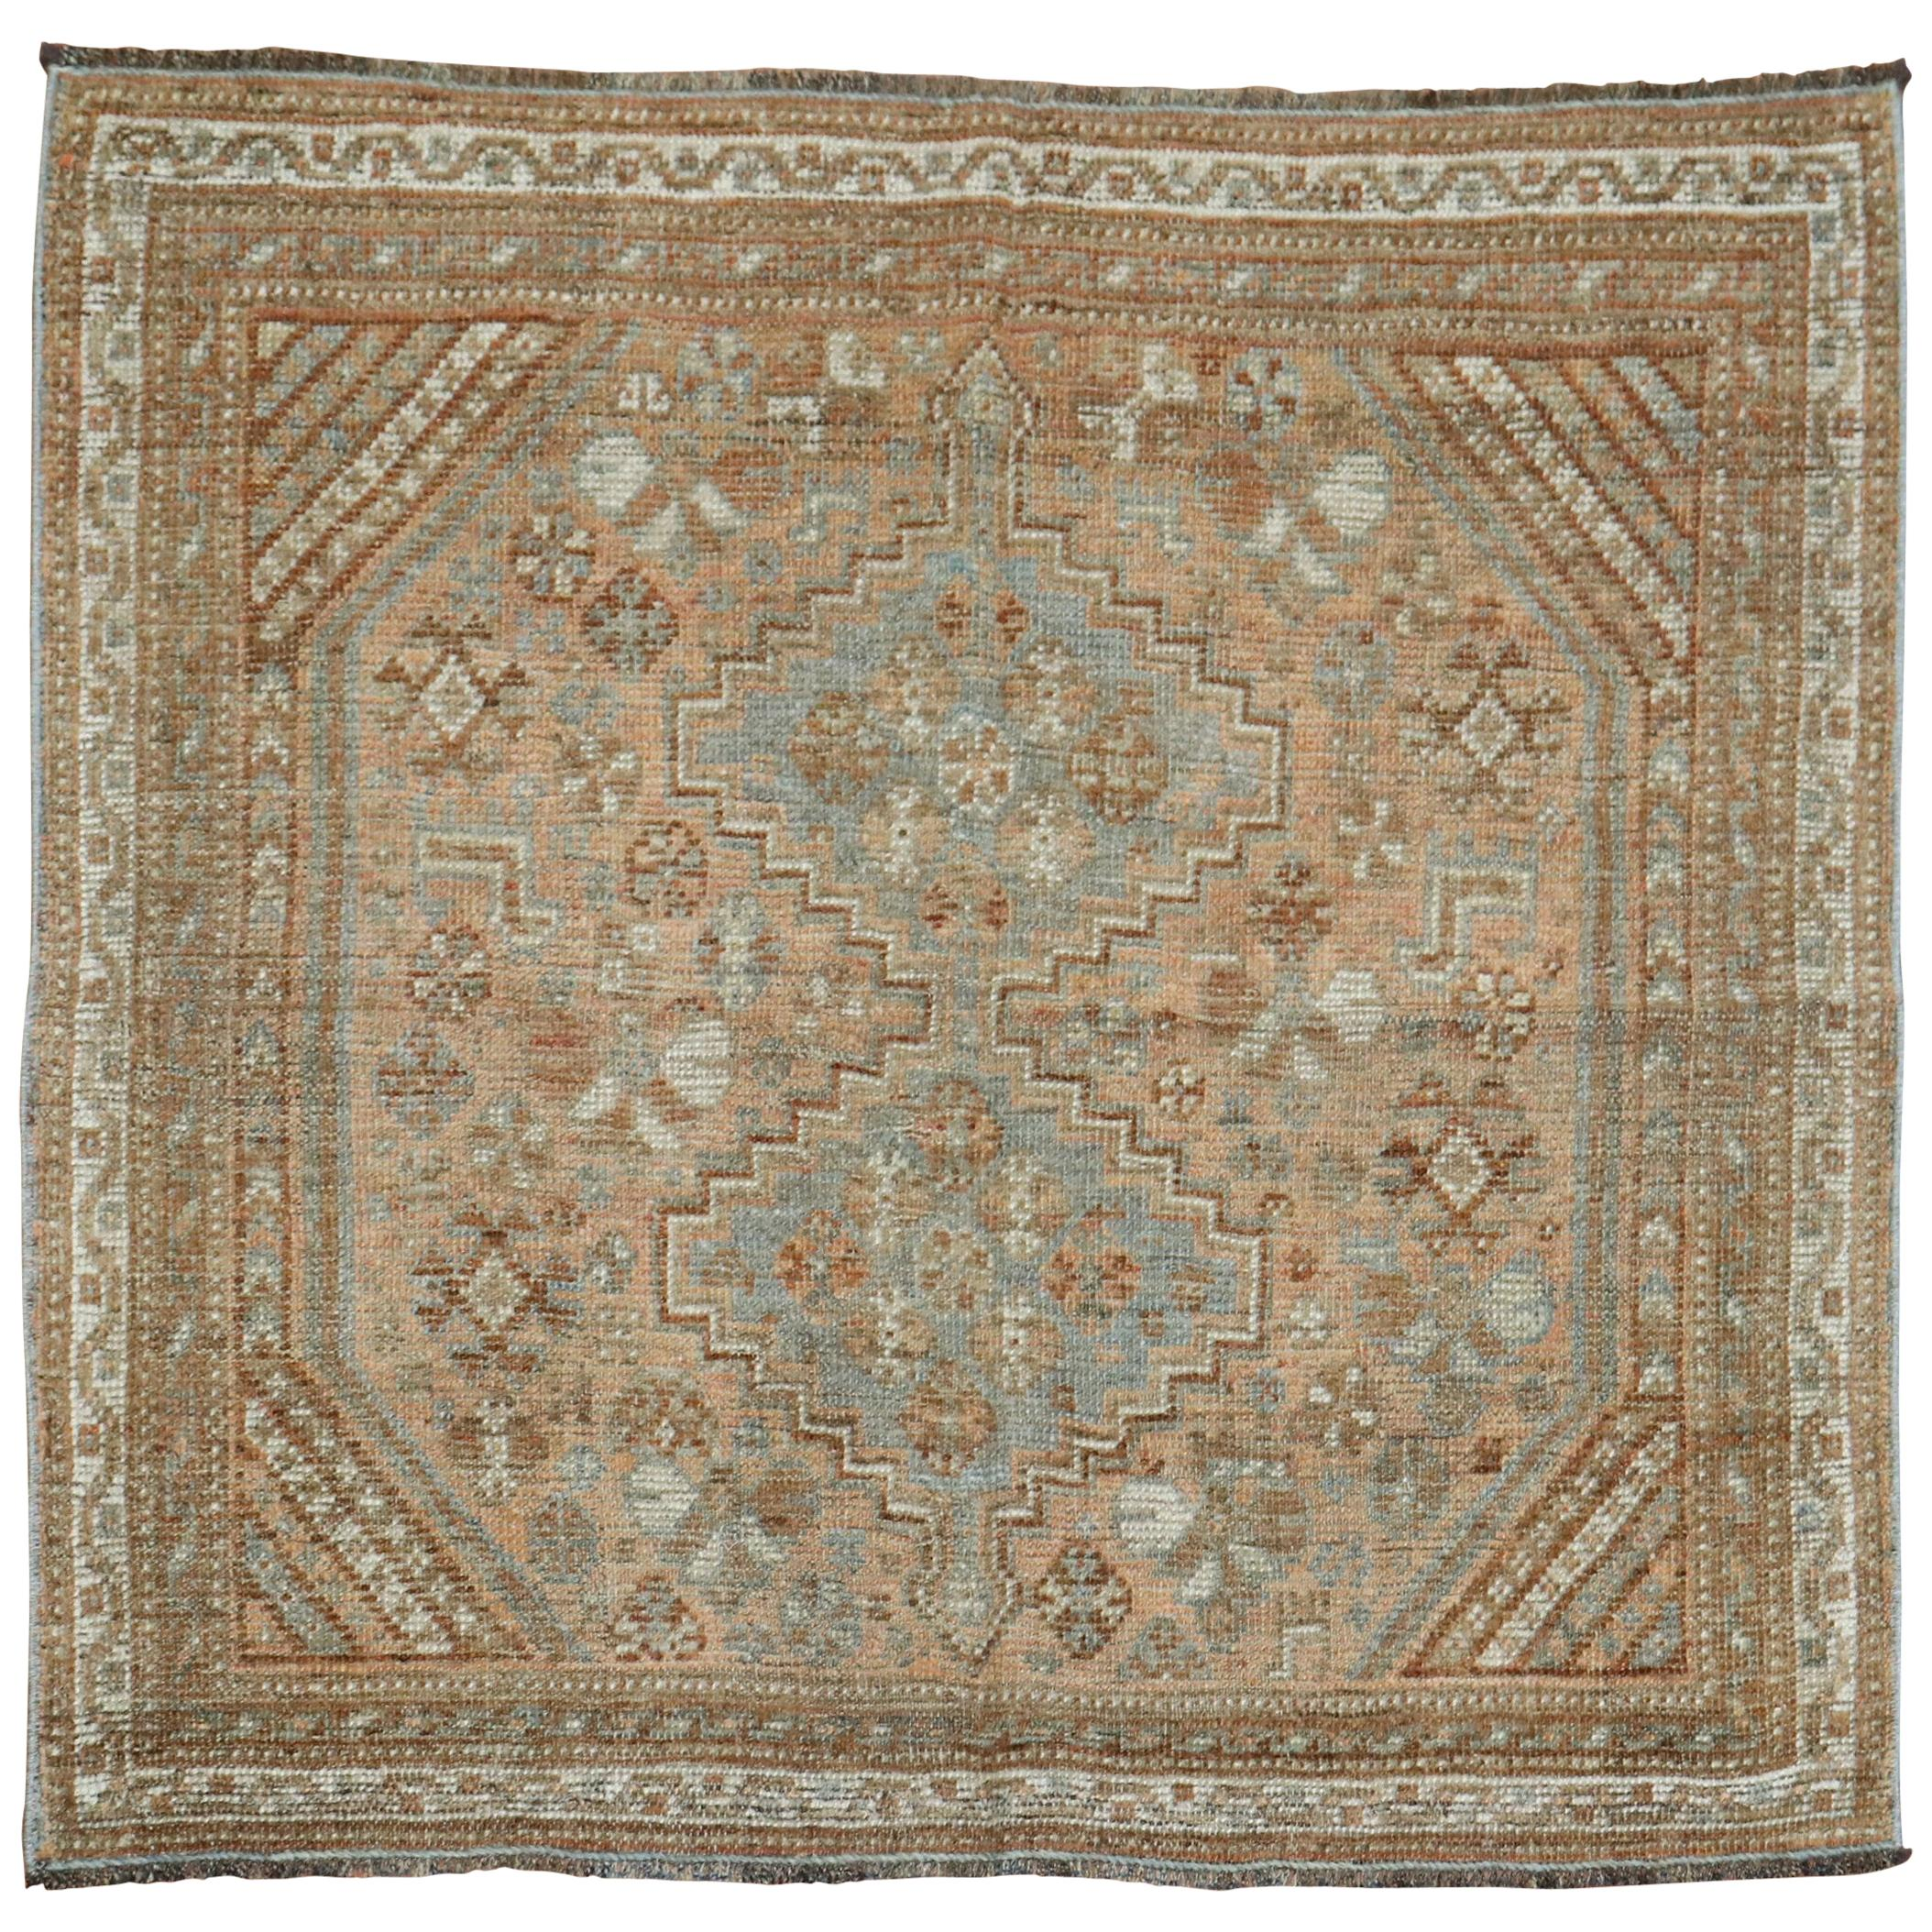 Brown Tribal Persian Earth Tone Square Scatter Rug, 20th Century